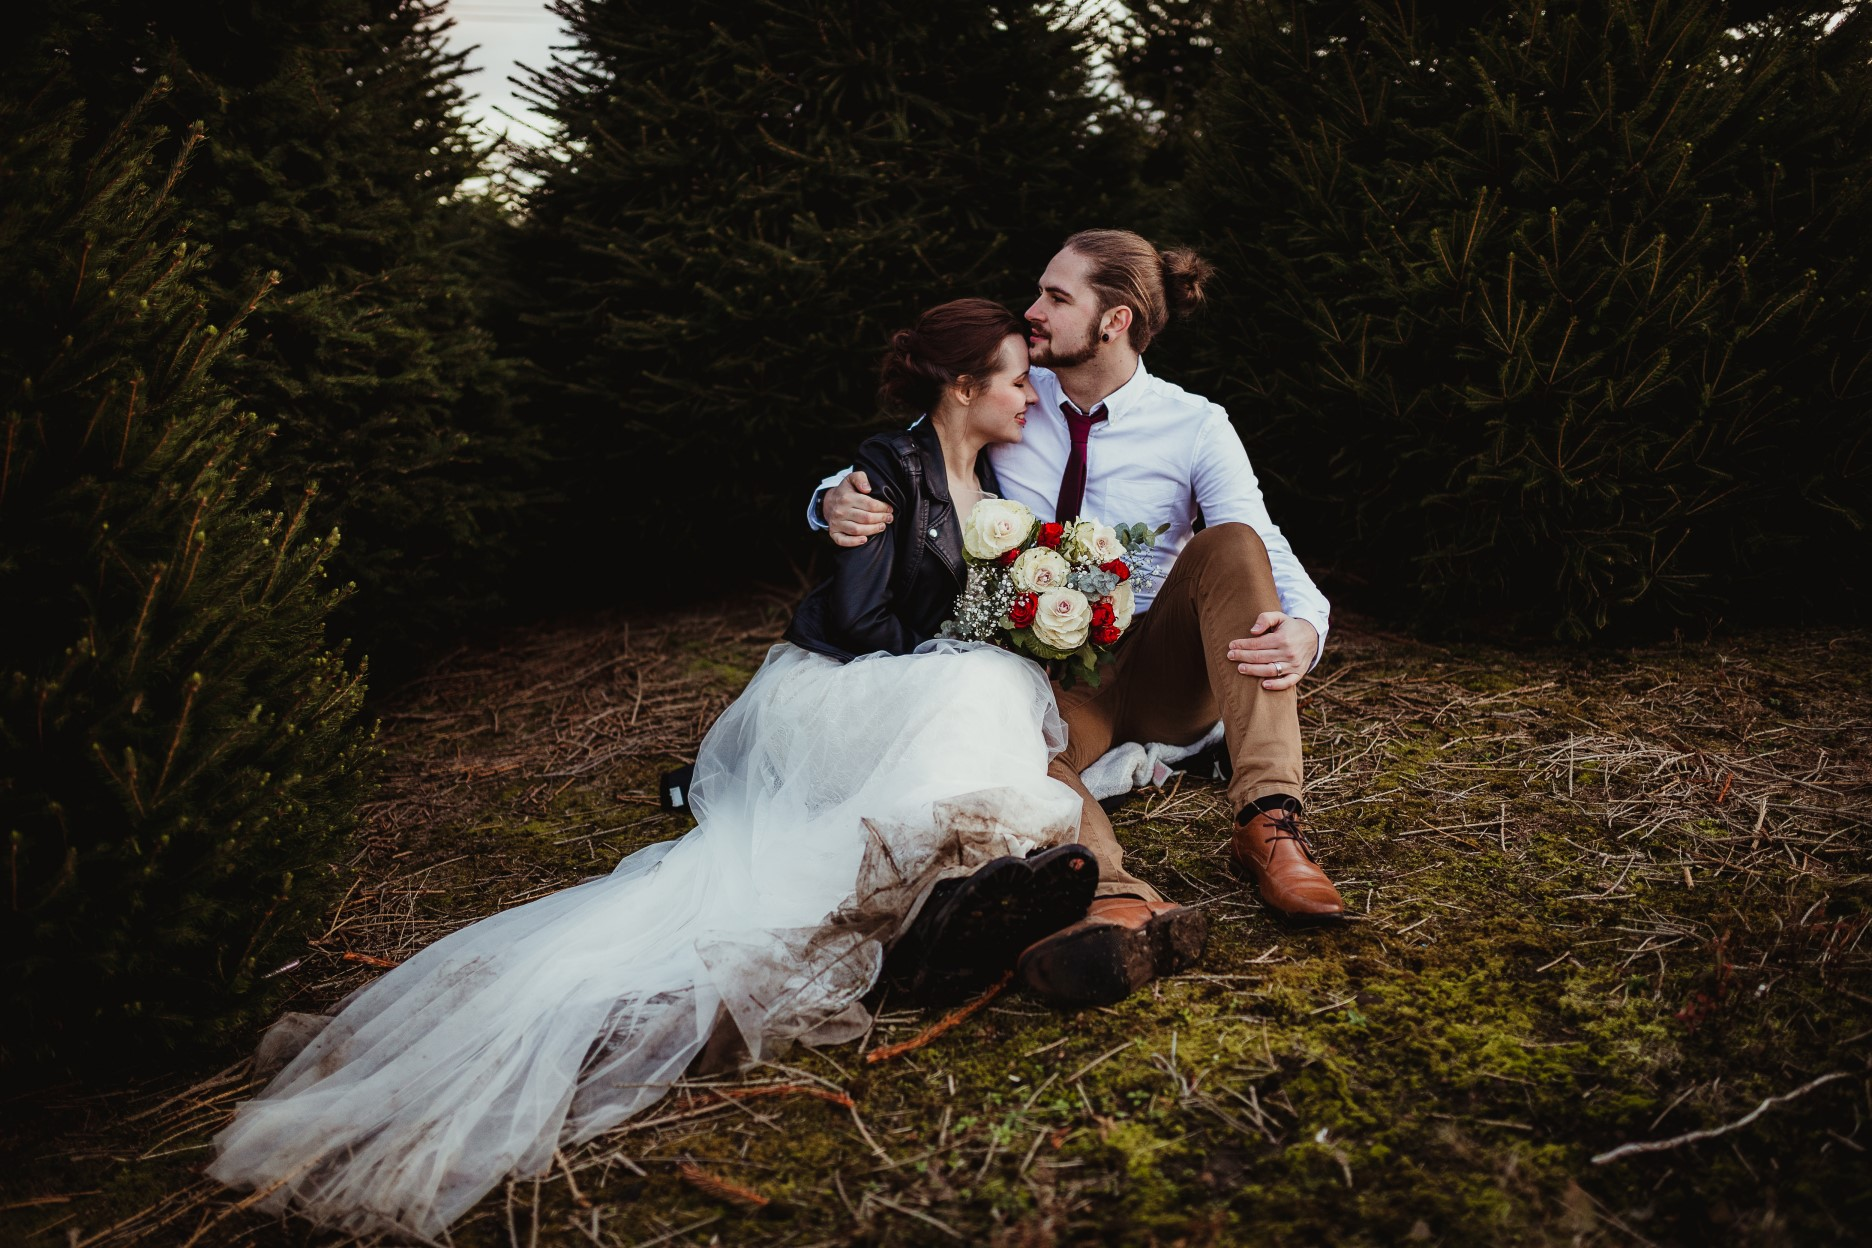 christmas elopement wedding- alternative wedding- christmas wedding- fly on the wall photography- wedding at a christmas tree farm